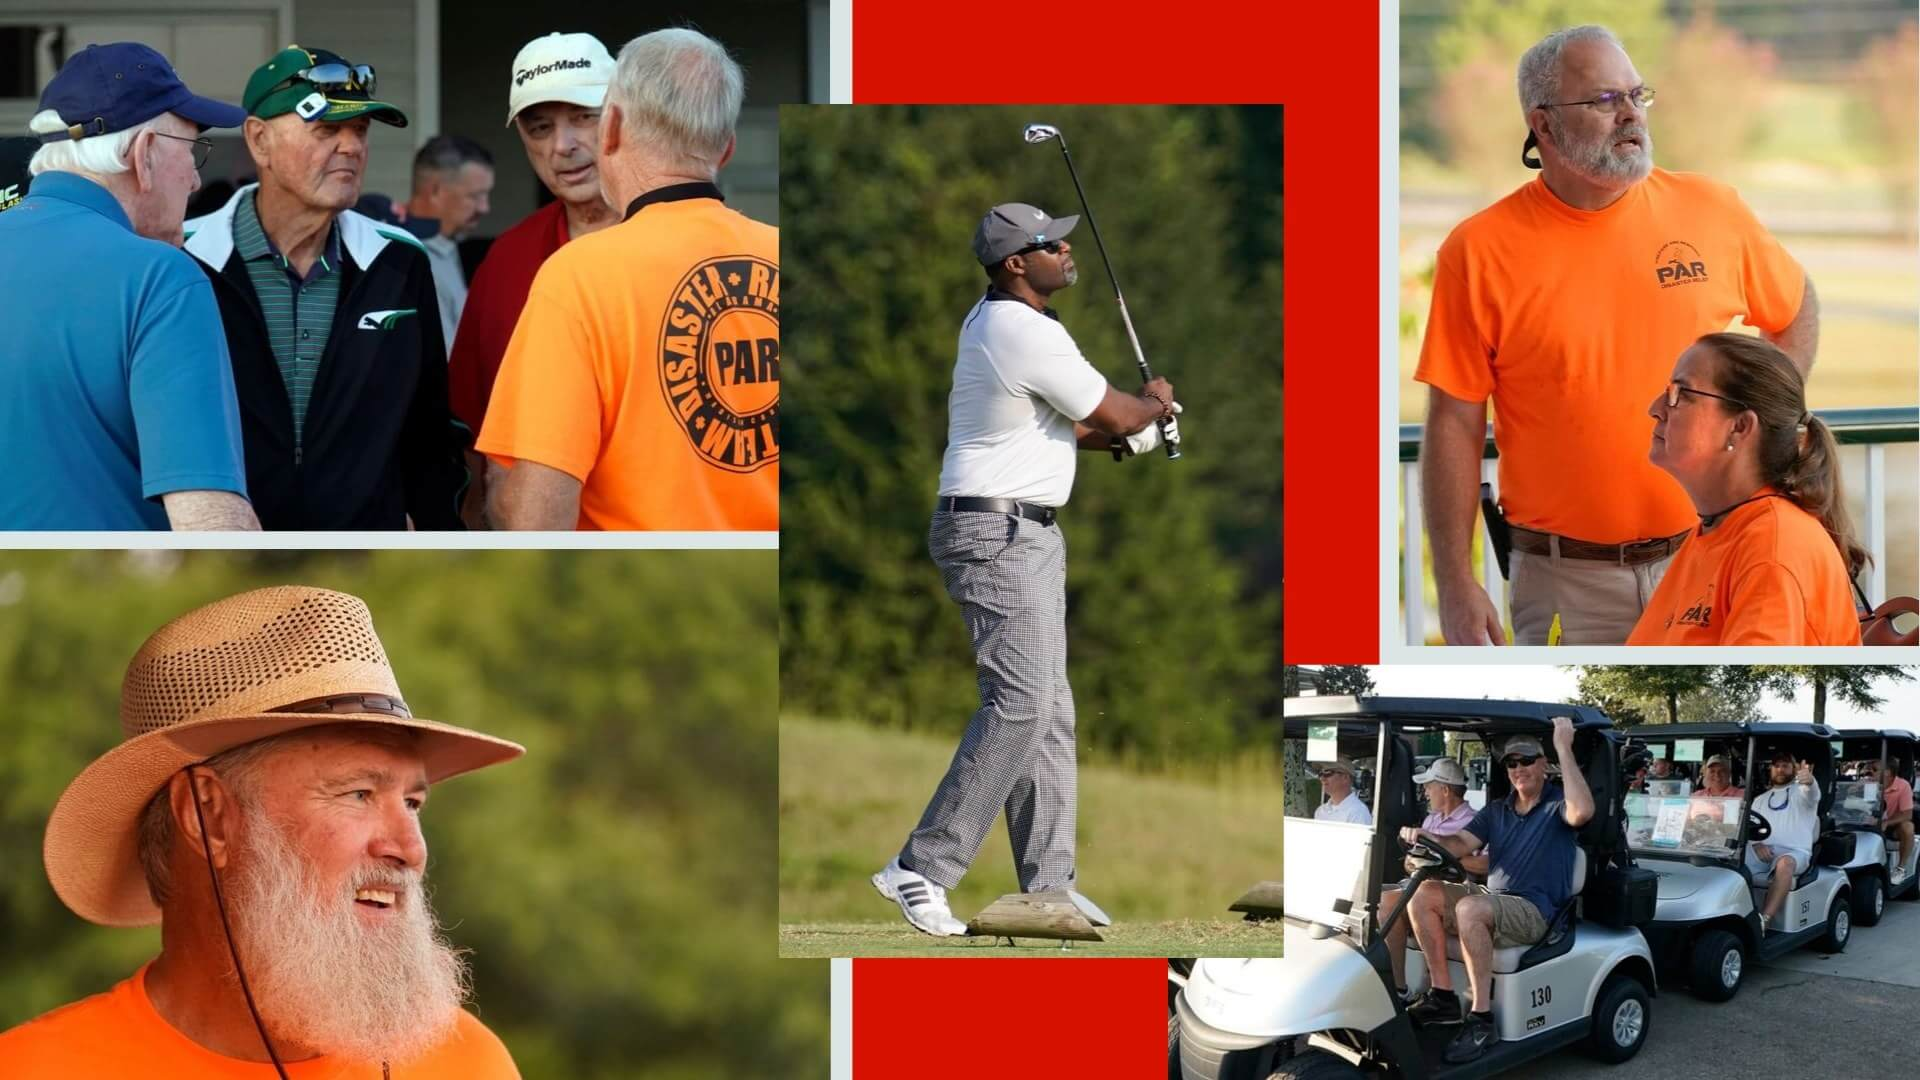 2019 PAR Golf Collage-2